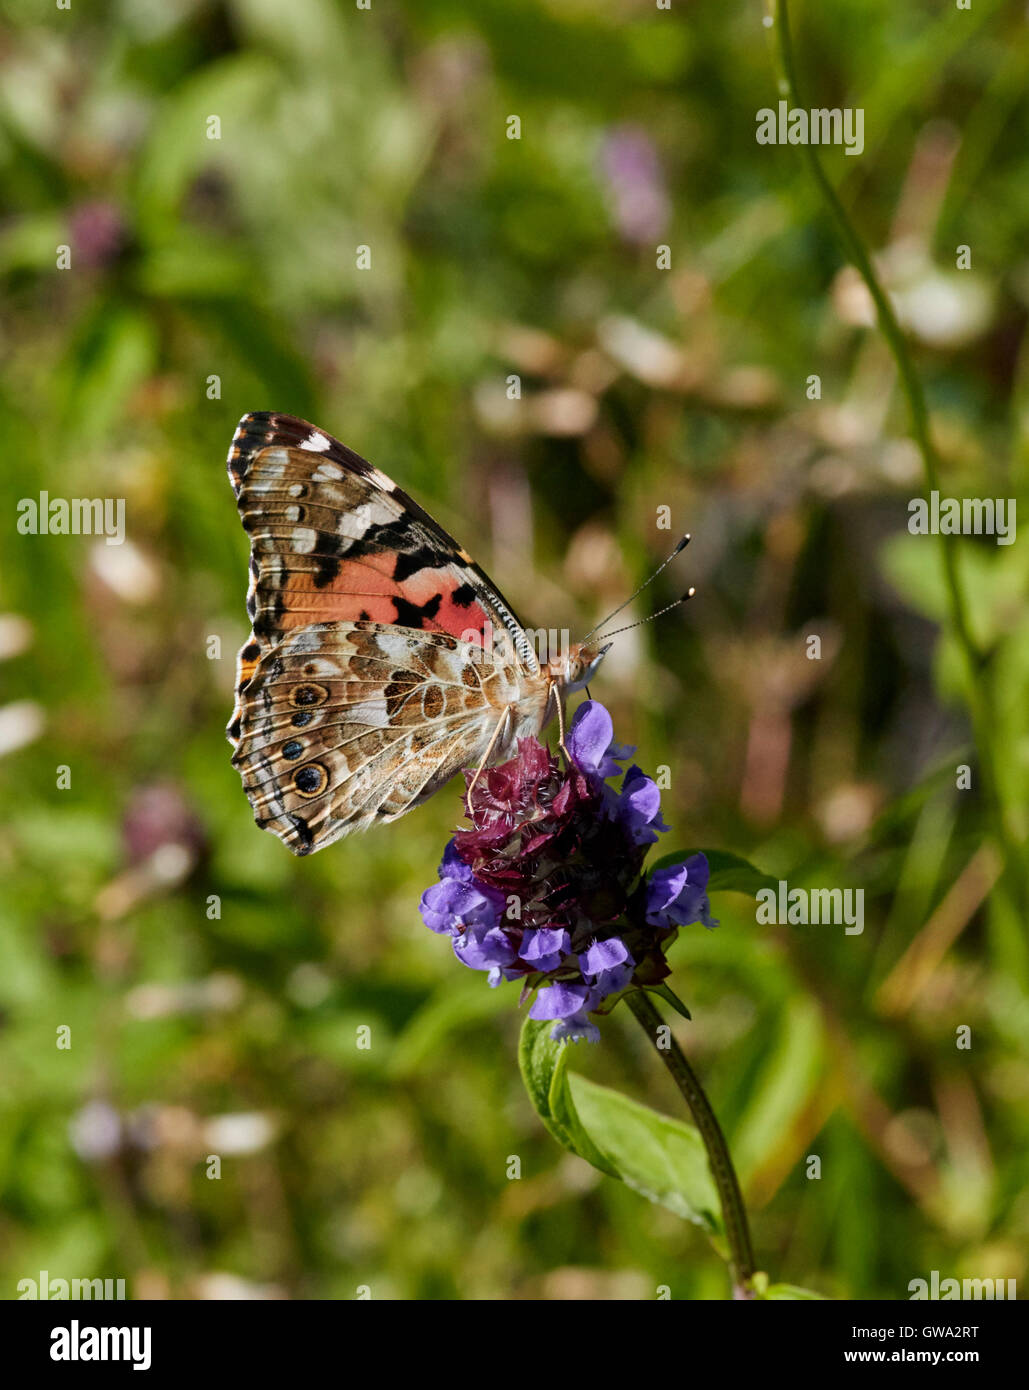 Painted Lady butterfly on selfheal flower. - Stock Image